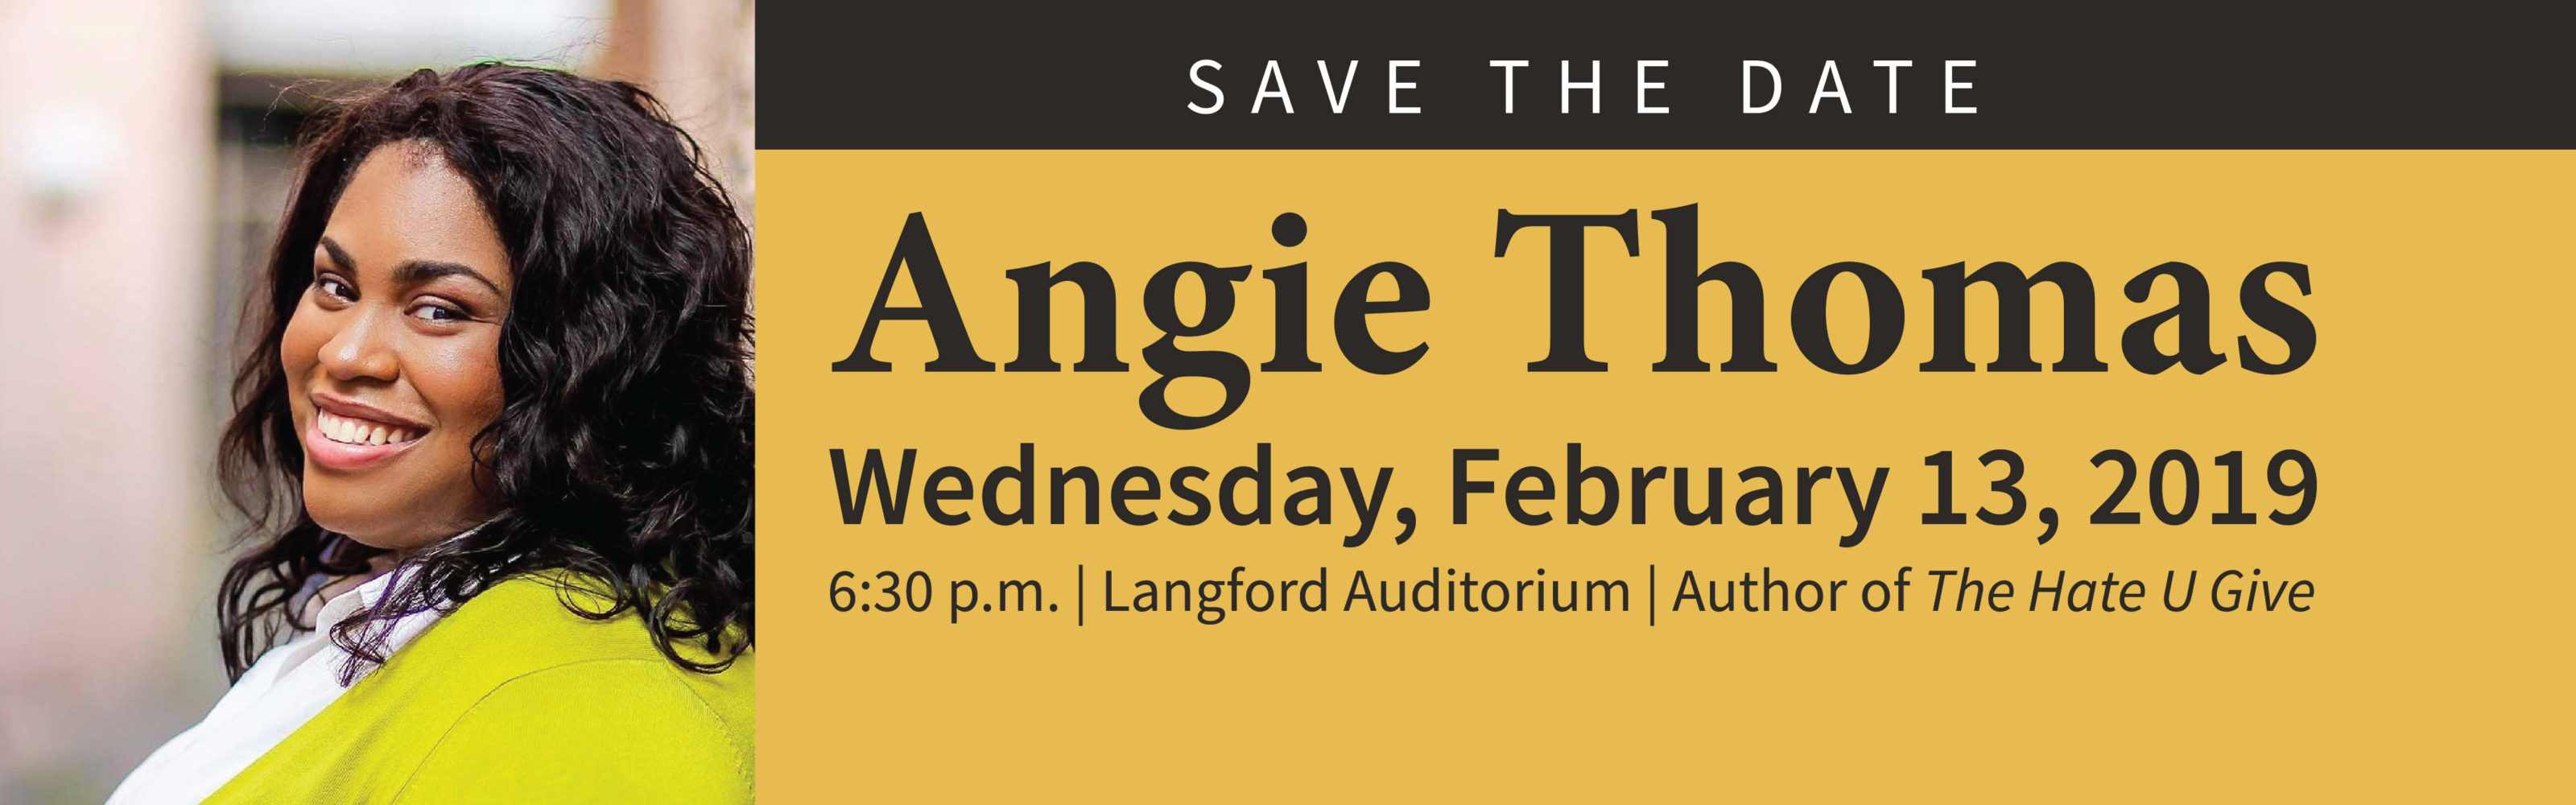 Angie Thomas Book Discussion and Author Keynote